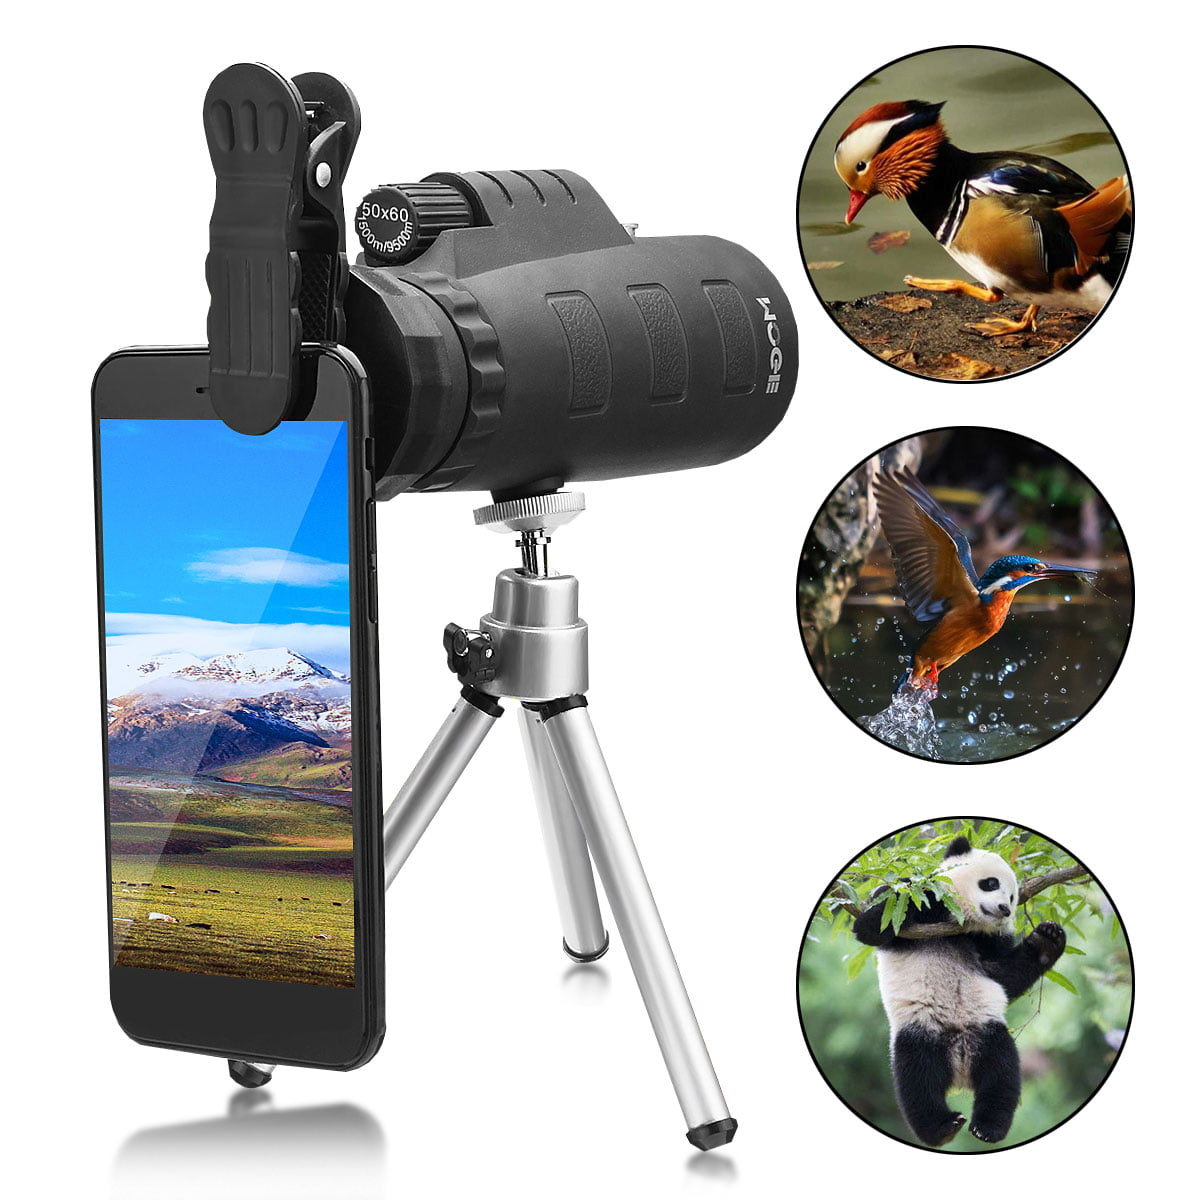 50X HD Zoom Night Vision Cellphone Monocular Telescope Hunting Camping + Clip + Tripod For Mobile Phone Smartphone by